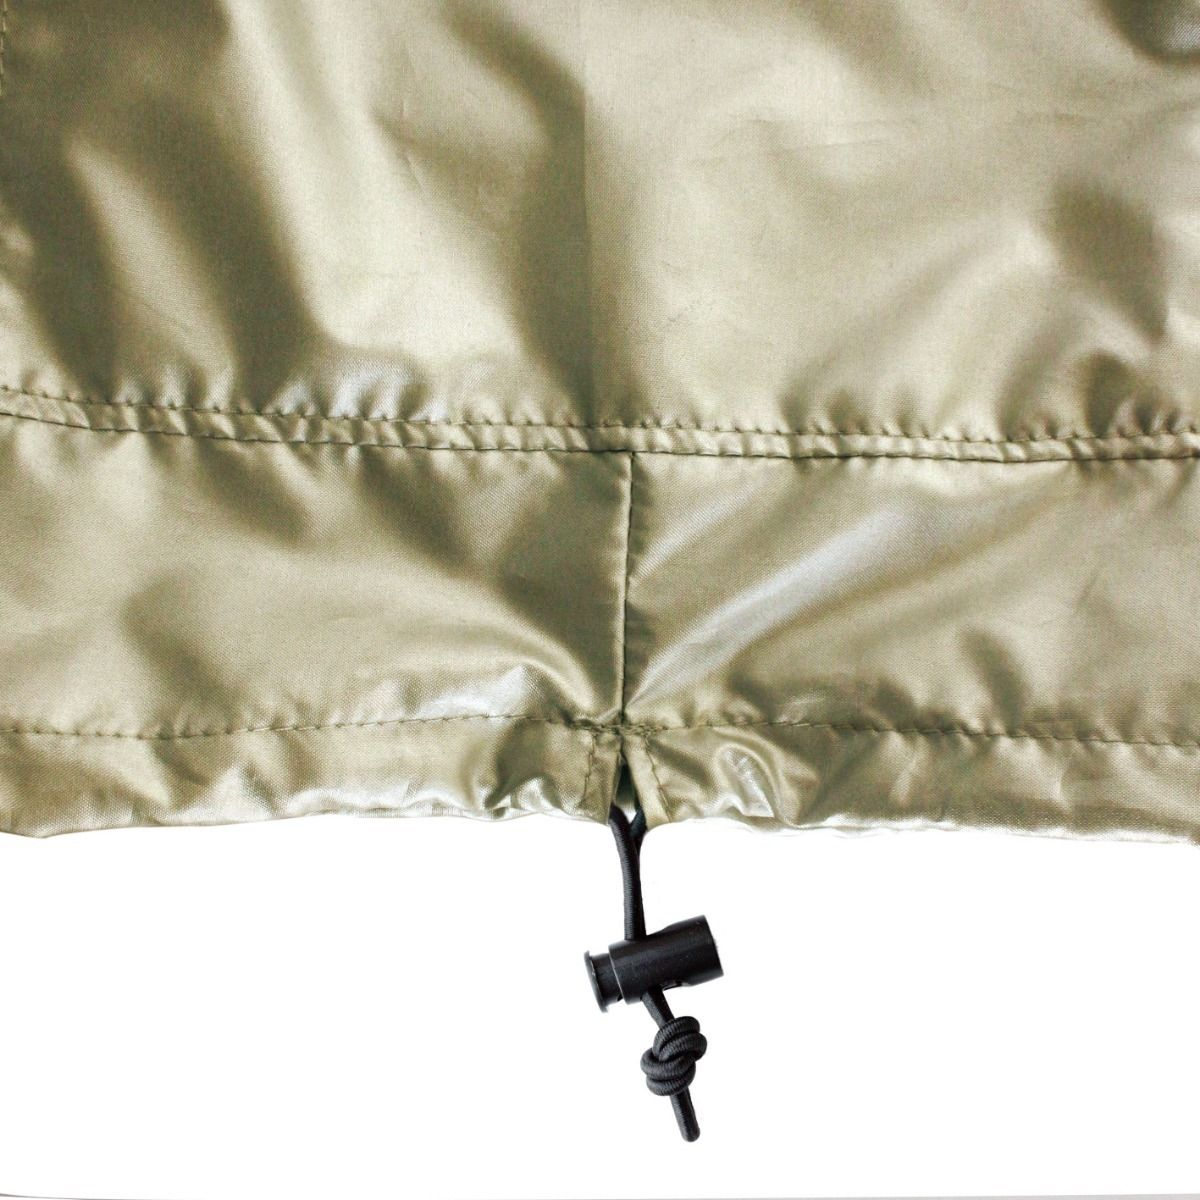 Waterproof-Outdoor-Heavy-Duty-Panier-Housse-Pour-Barbecue-Patio-Gaz-Grill-Cover-4-Tailles miniature 9